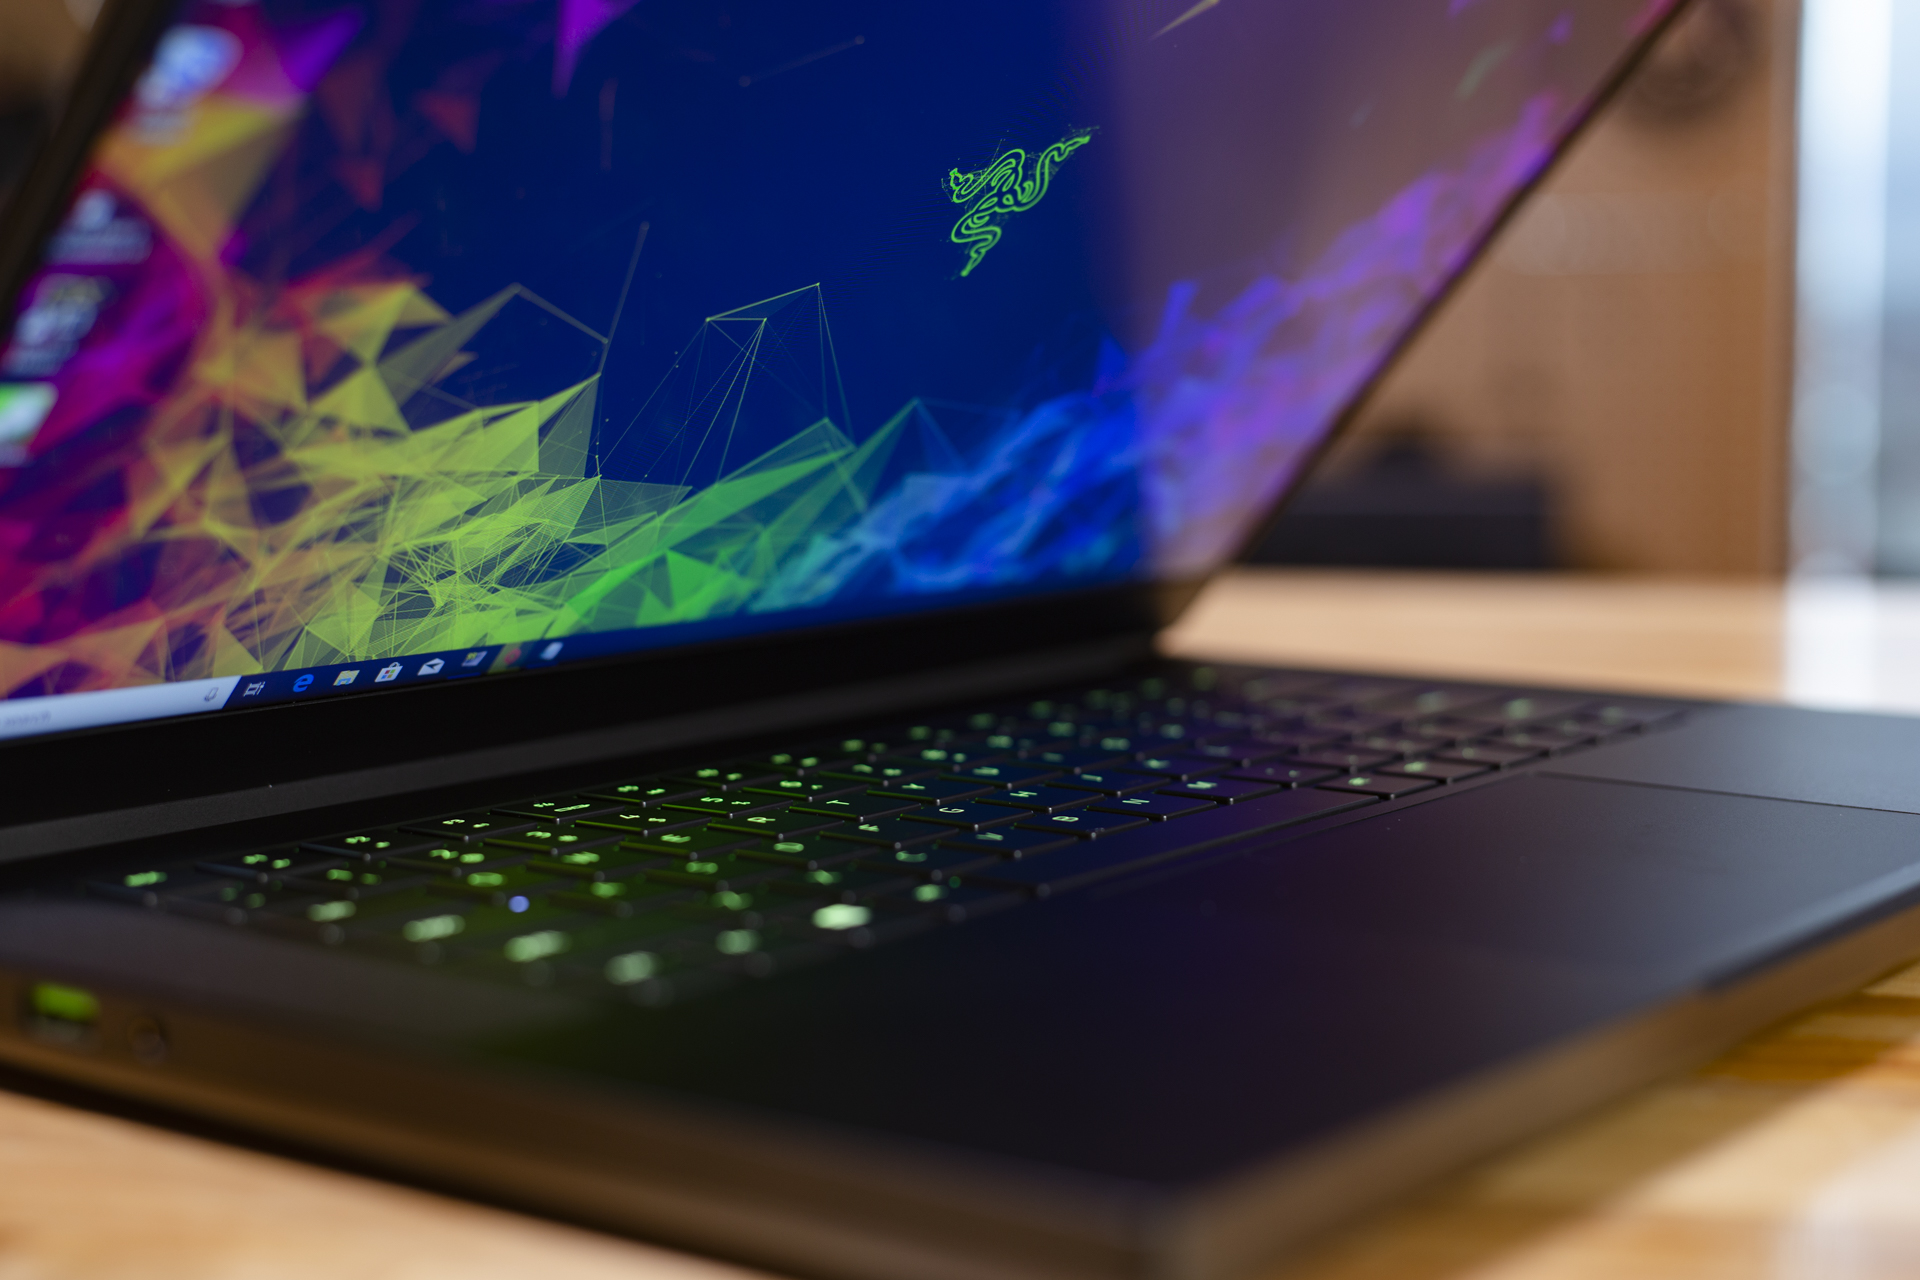 Razer's Most Basic Blade 15 Is the One Most Gamers Should